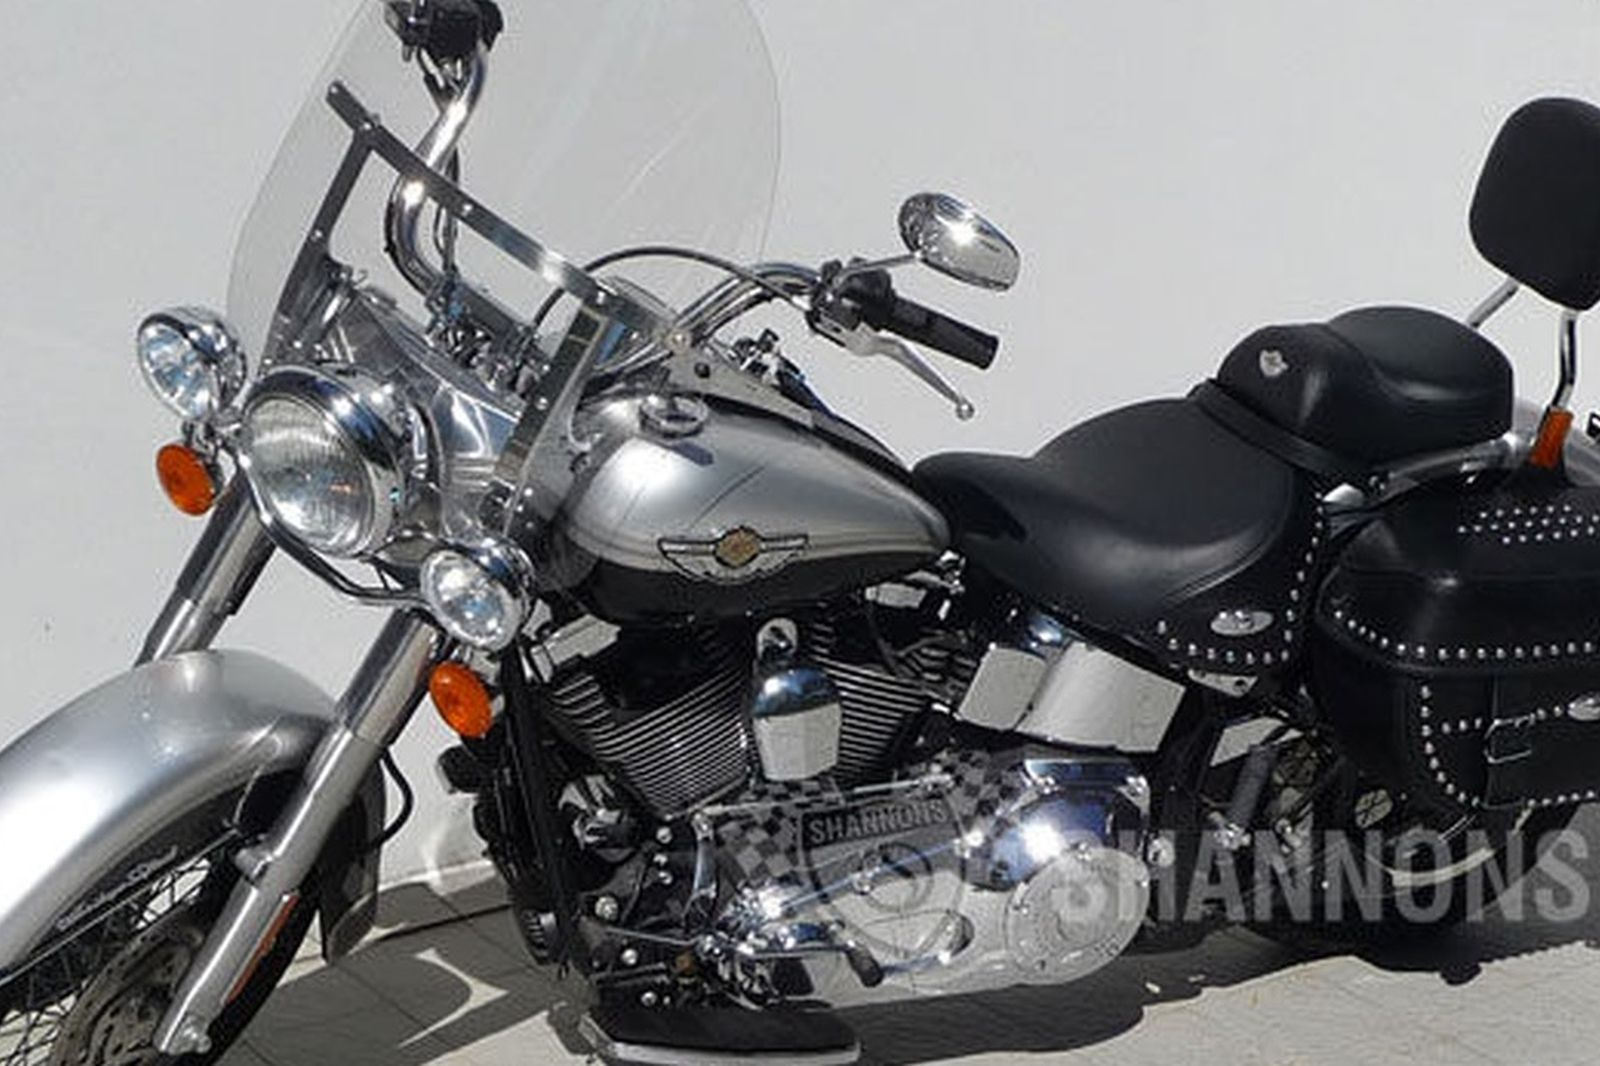 Harley-Davidson Heritage Softail '100th Anniversary' Motorcycle